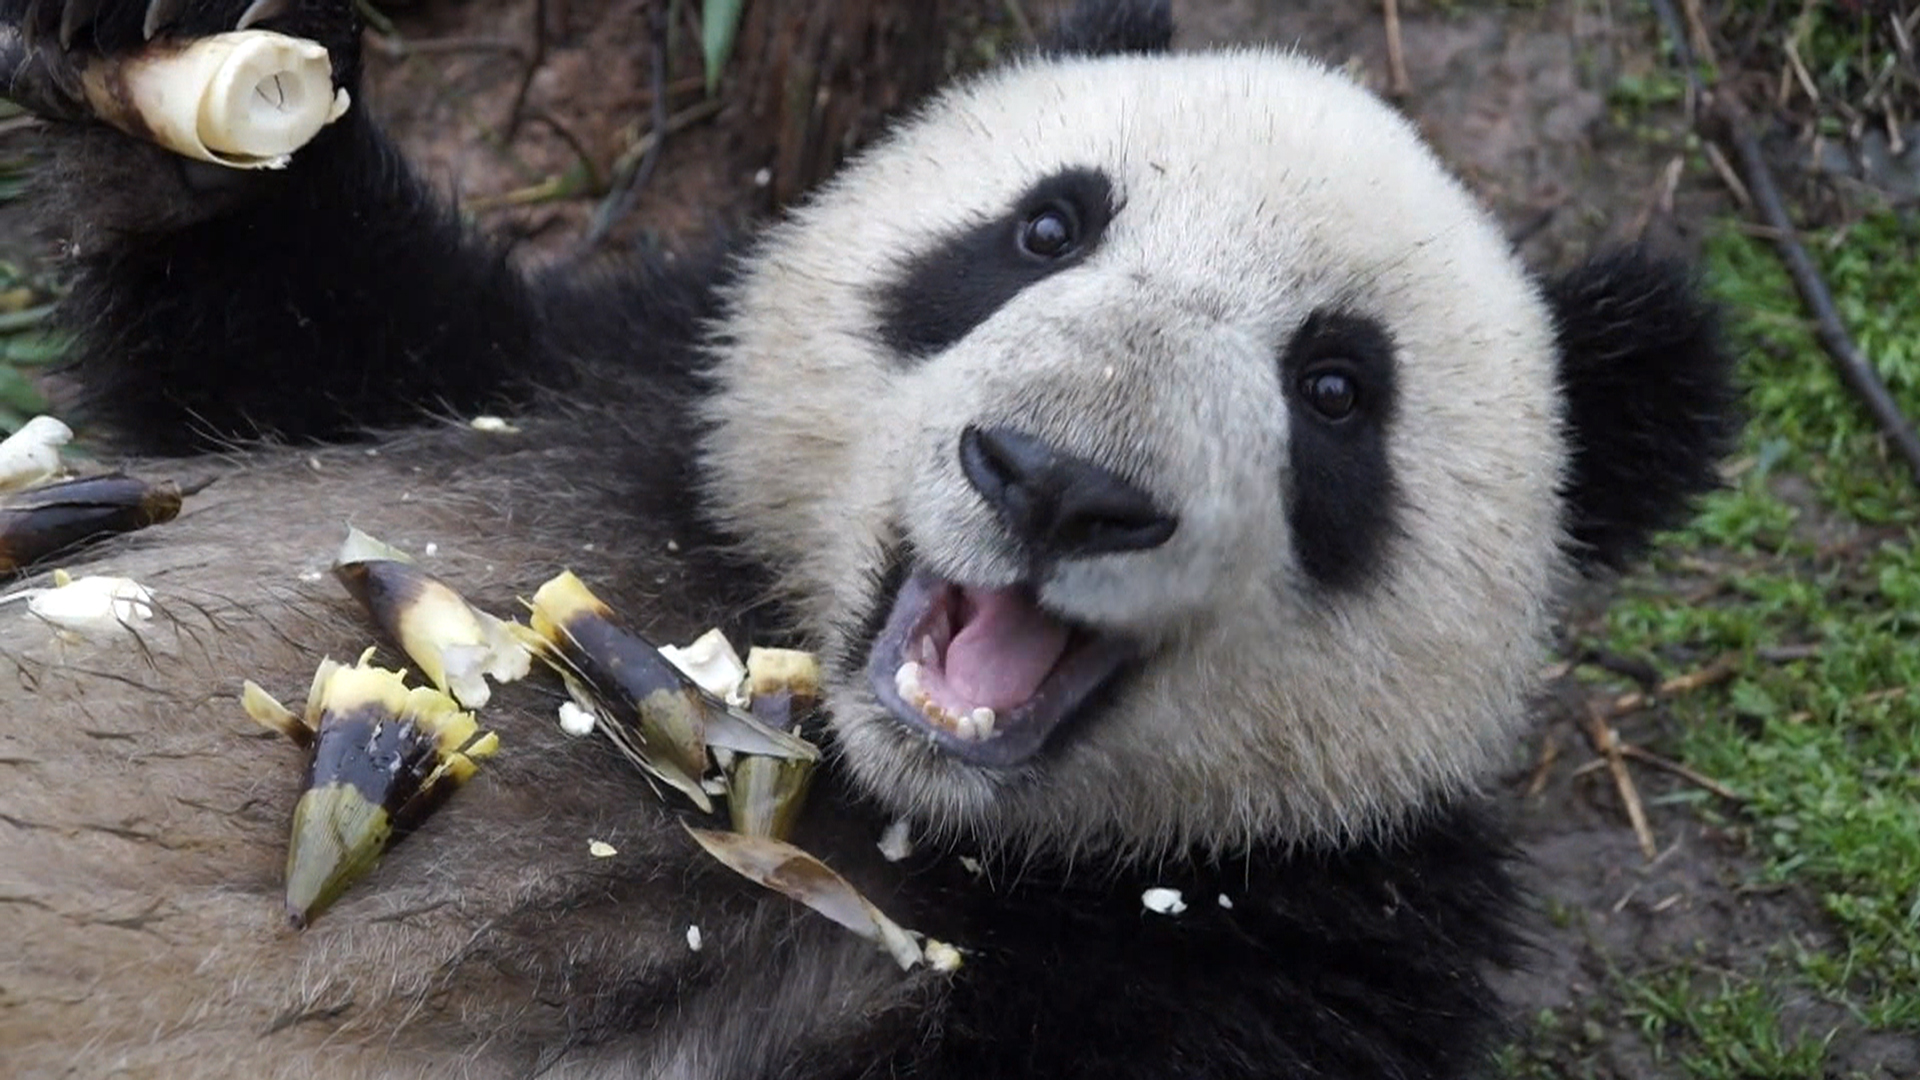 endangered pandas report Endangered species report the endangered animal i picked was the ailuropoda melanoleuca the common name is the giant panda they are playful, poor breeders, and they are becoming extinct because of many things.